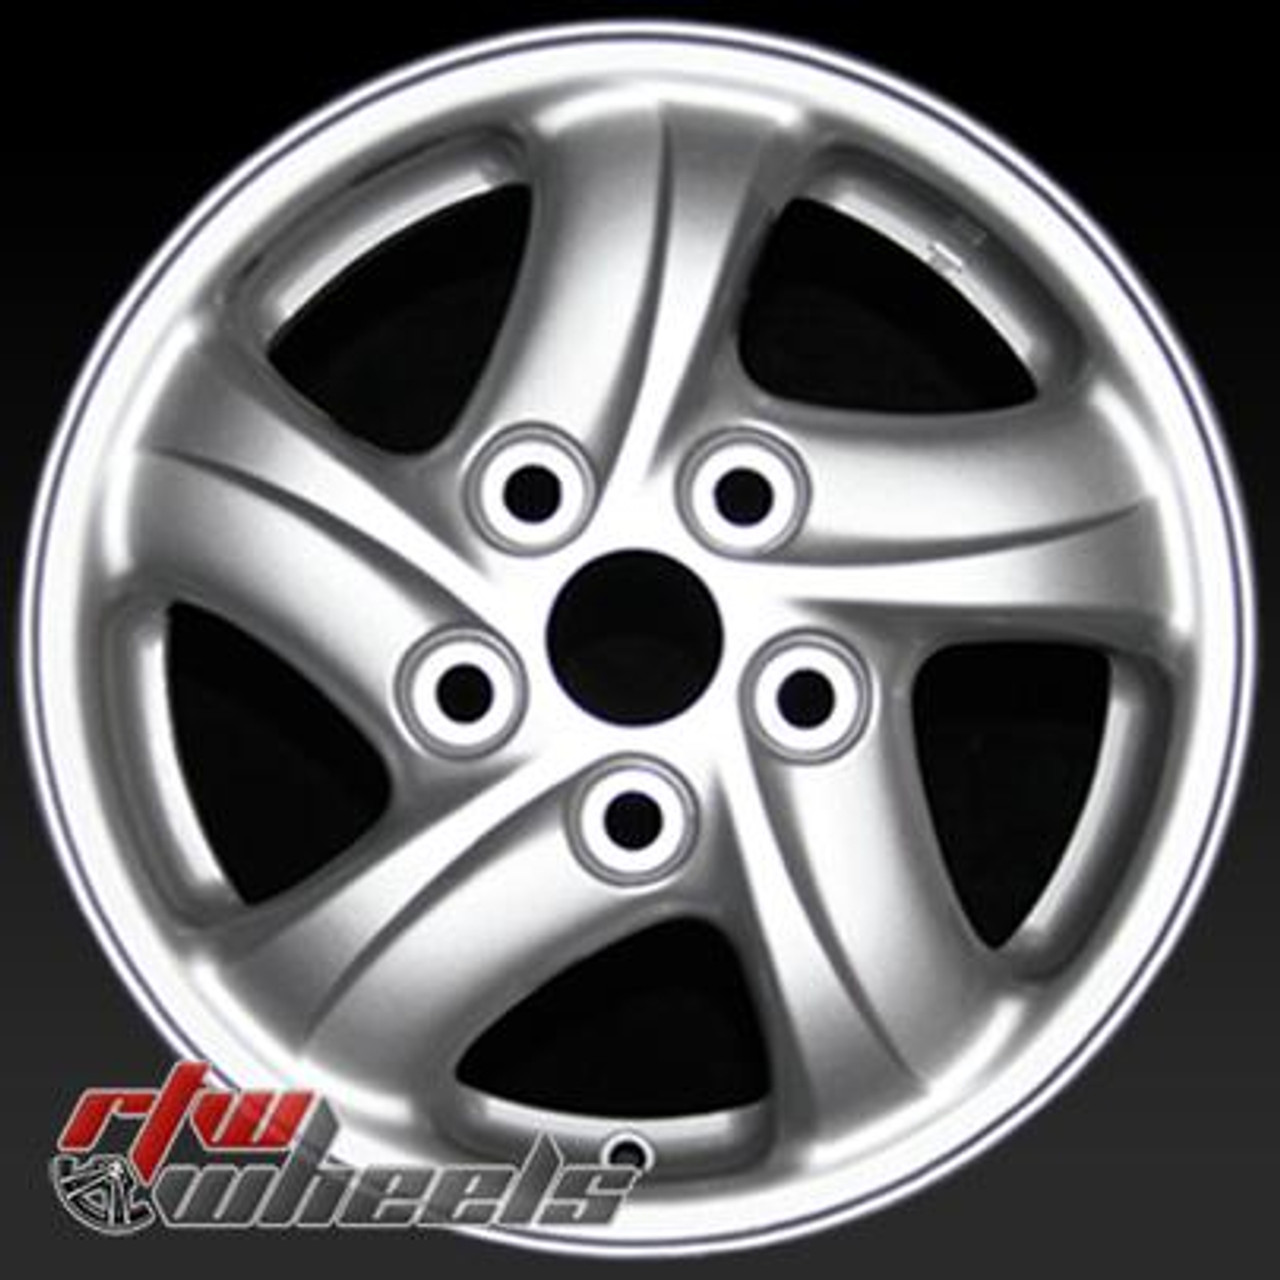 14 Mitsubishi Eclipse Oem Wheels For Sale 1994 1999 Silver Stock Rims 65735